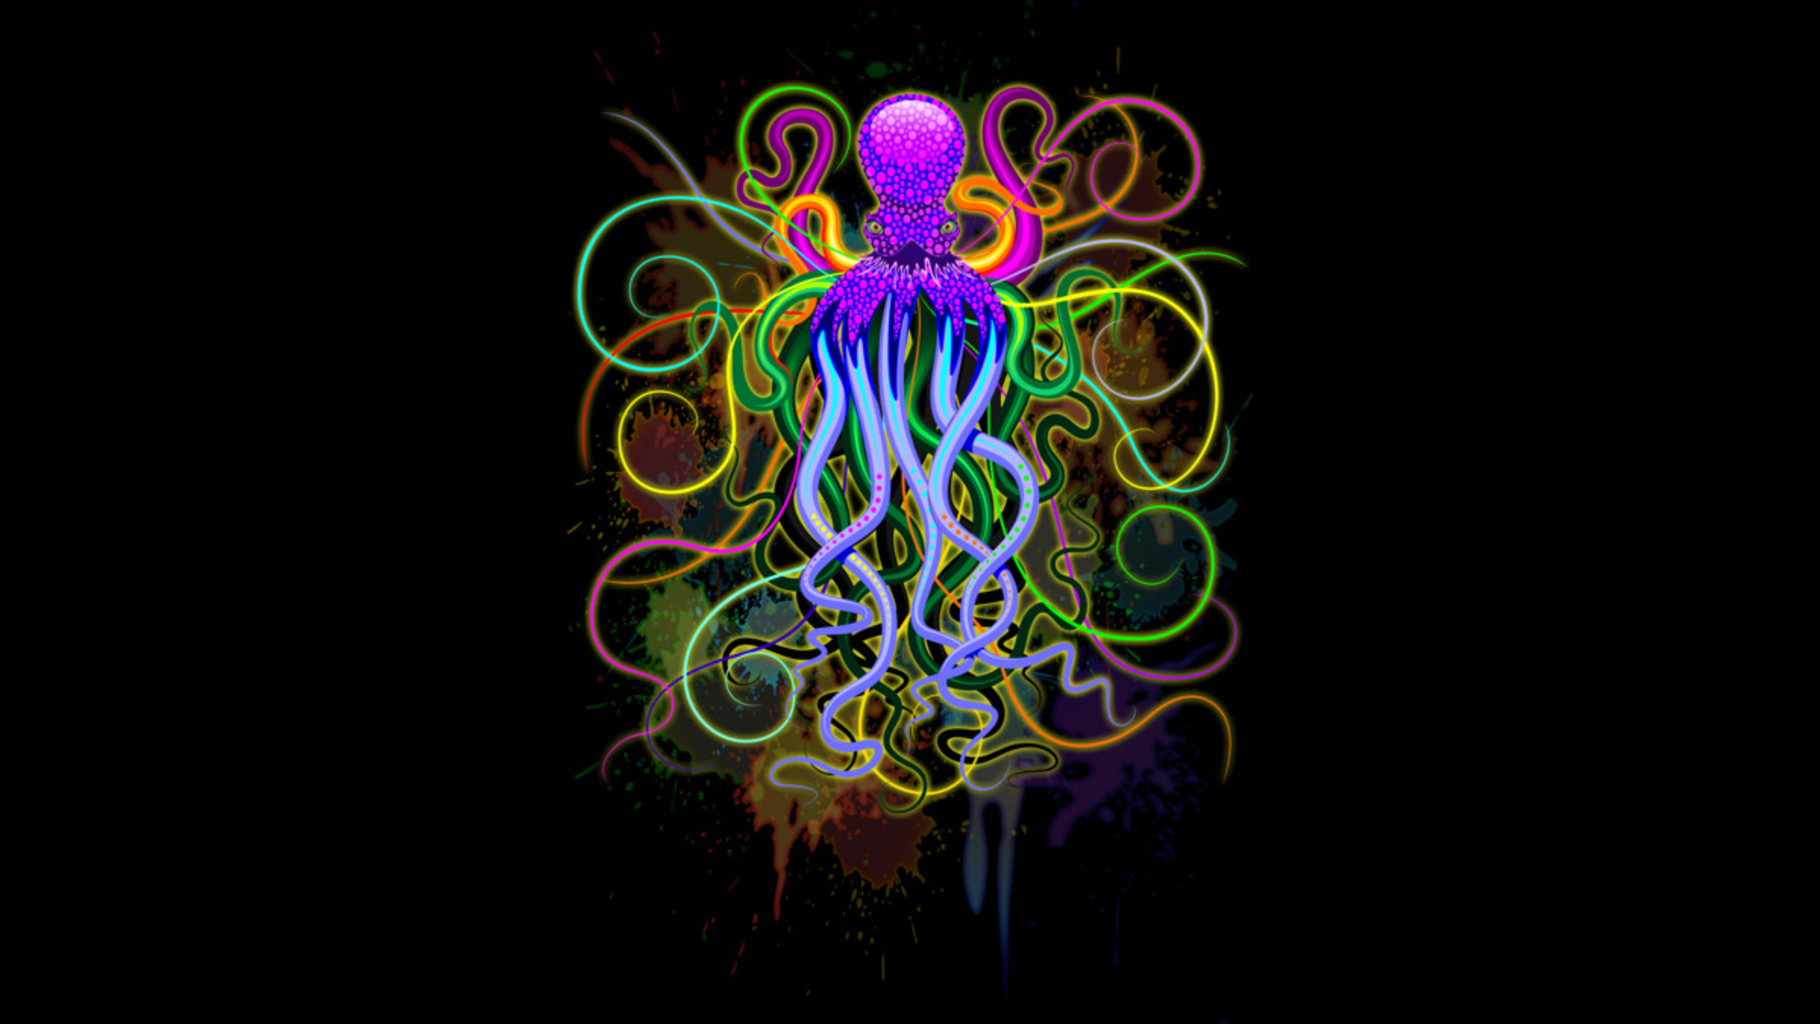 Design by Humans: Octopus Psychedelic Luminescence